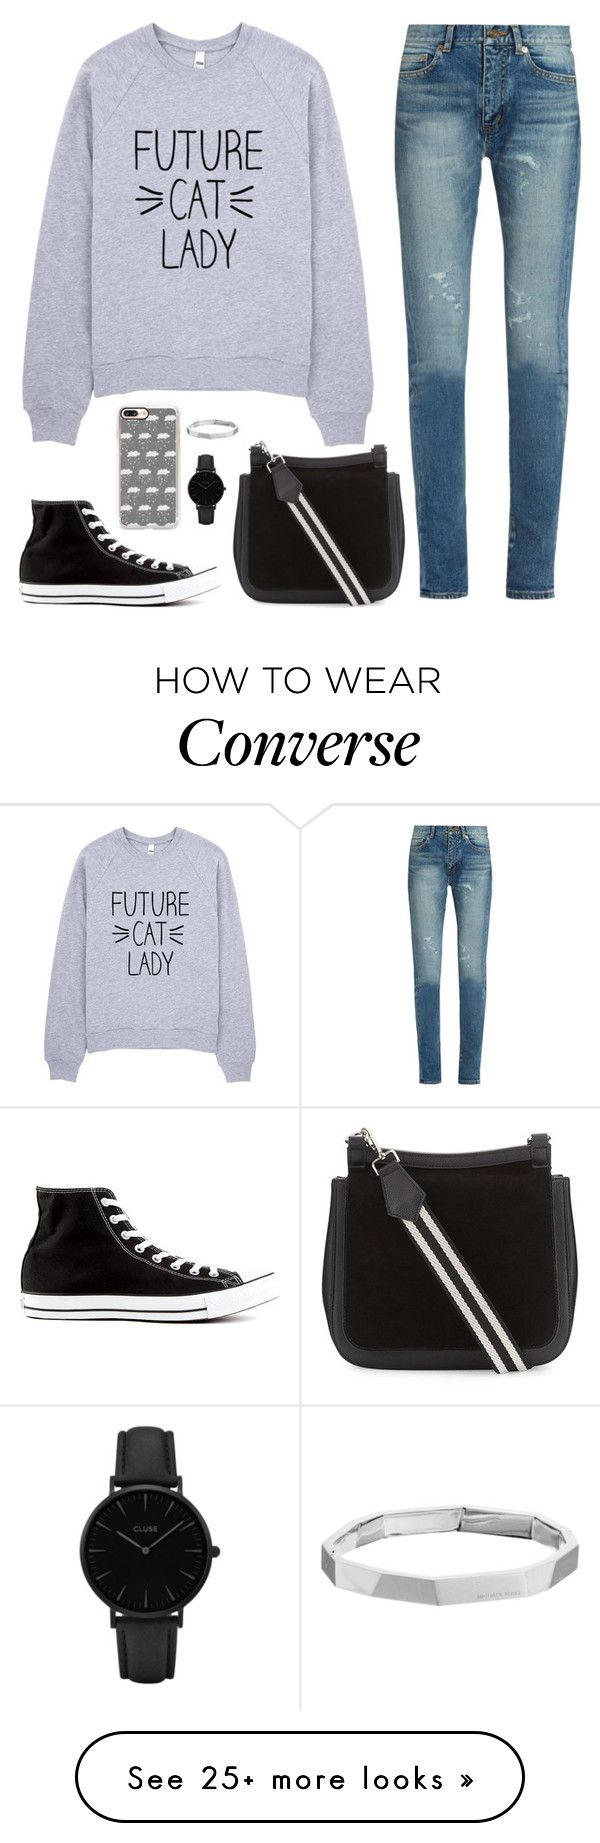 """""""Stay warm"""" by abigaillieb on Polyvore featuring Yves Saint Laurent, Converse, Casetify, CLUSE and Michael Kors"""